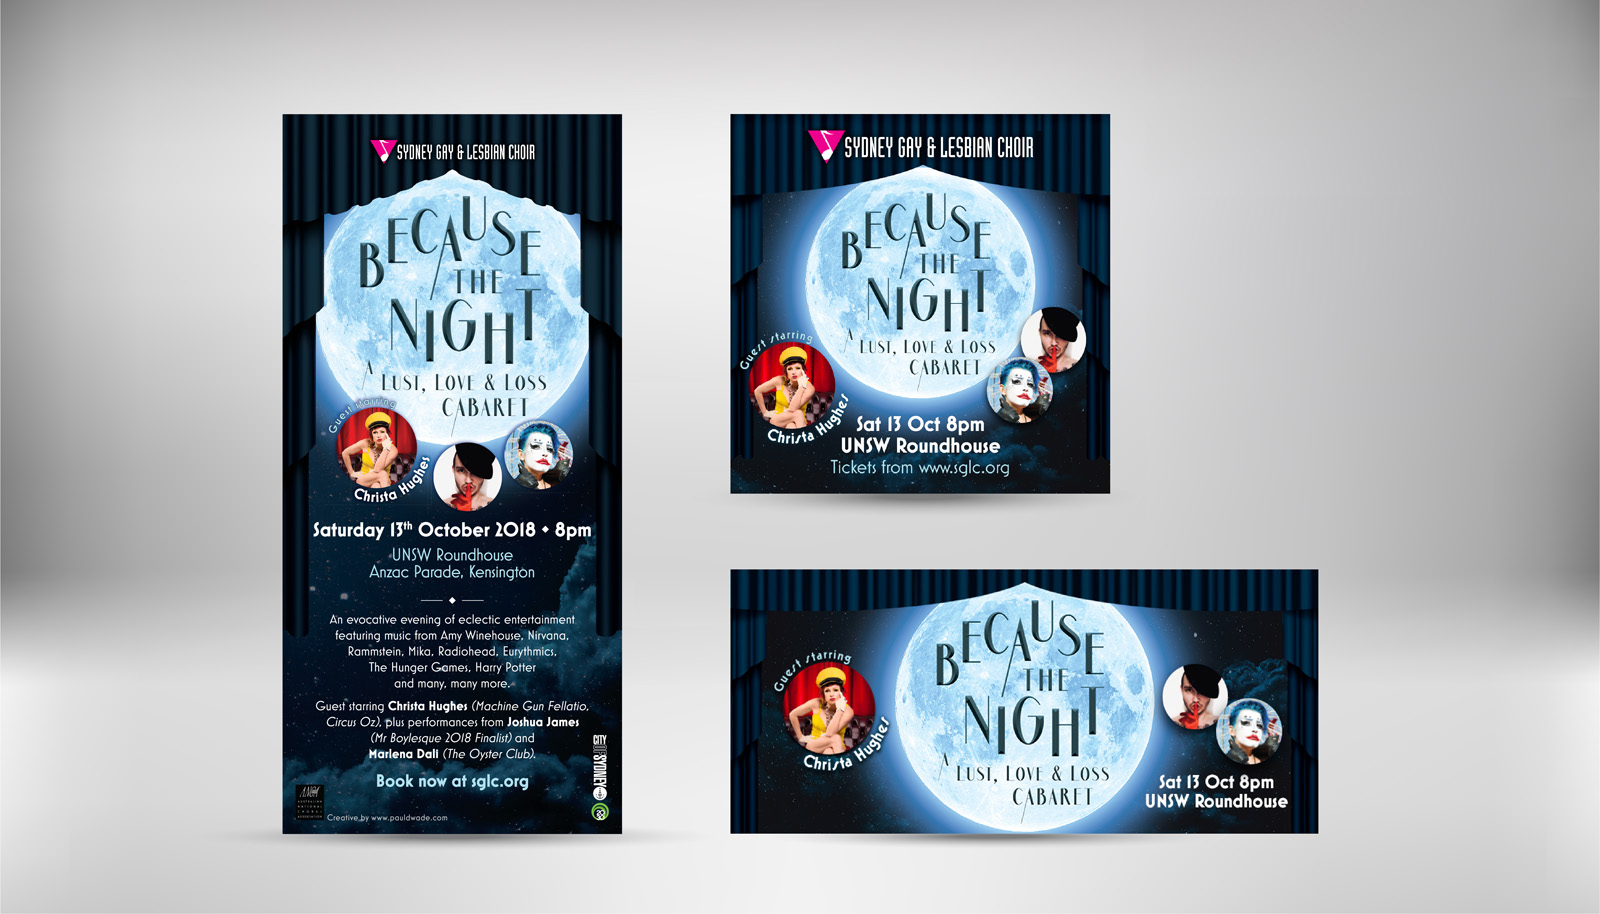 SGLC-Because-The-Night-Poster-and-Socials